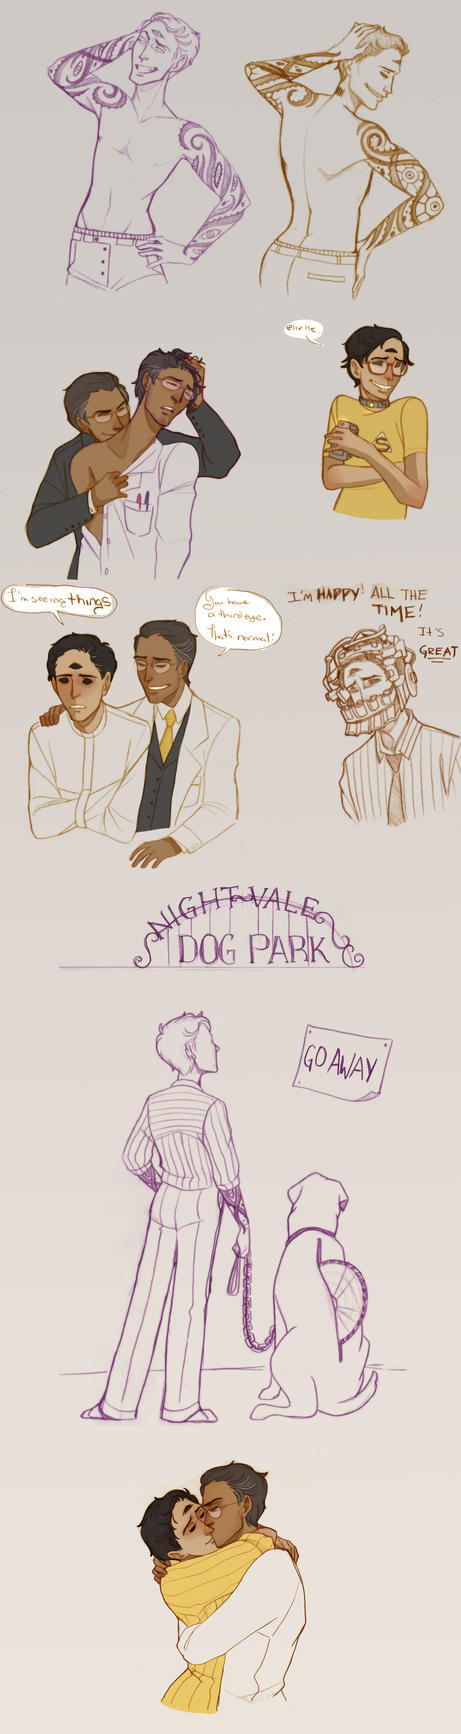 a night vale sketchdump by Sour-Purple